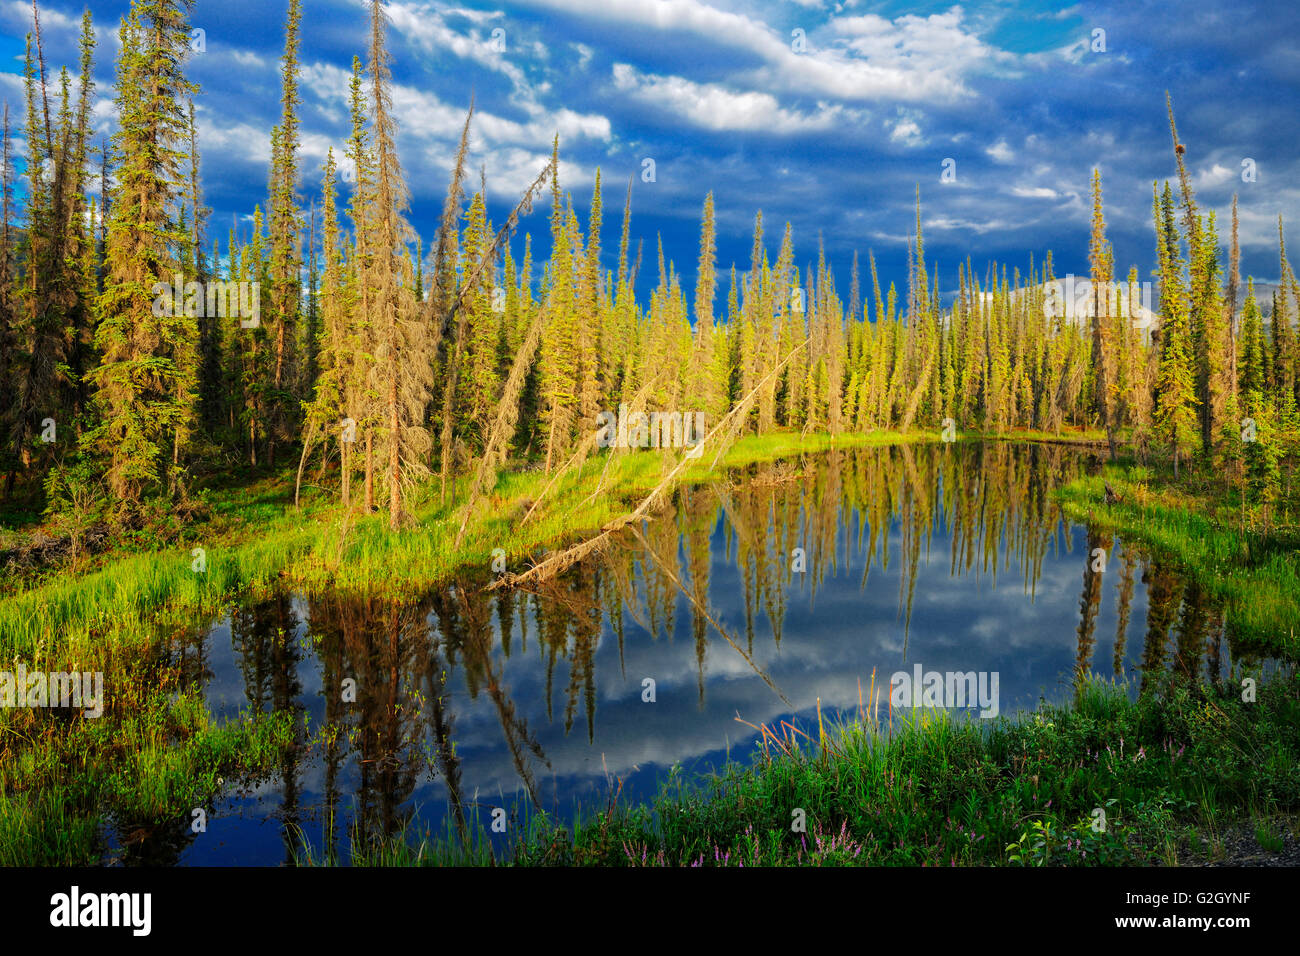 Wetland on the Dempster Highway (KM 210 - 215) Dempster Highway Yukon Canada - Stock Image